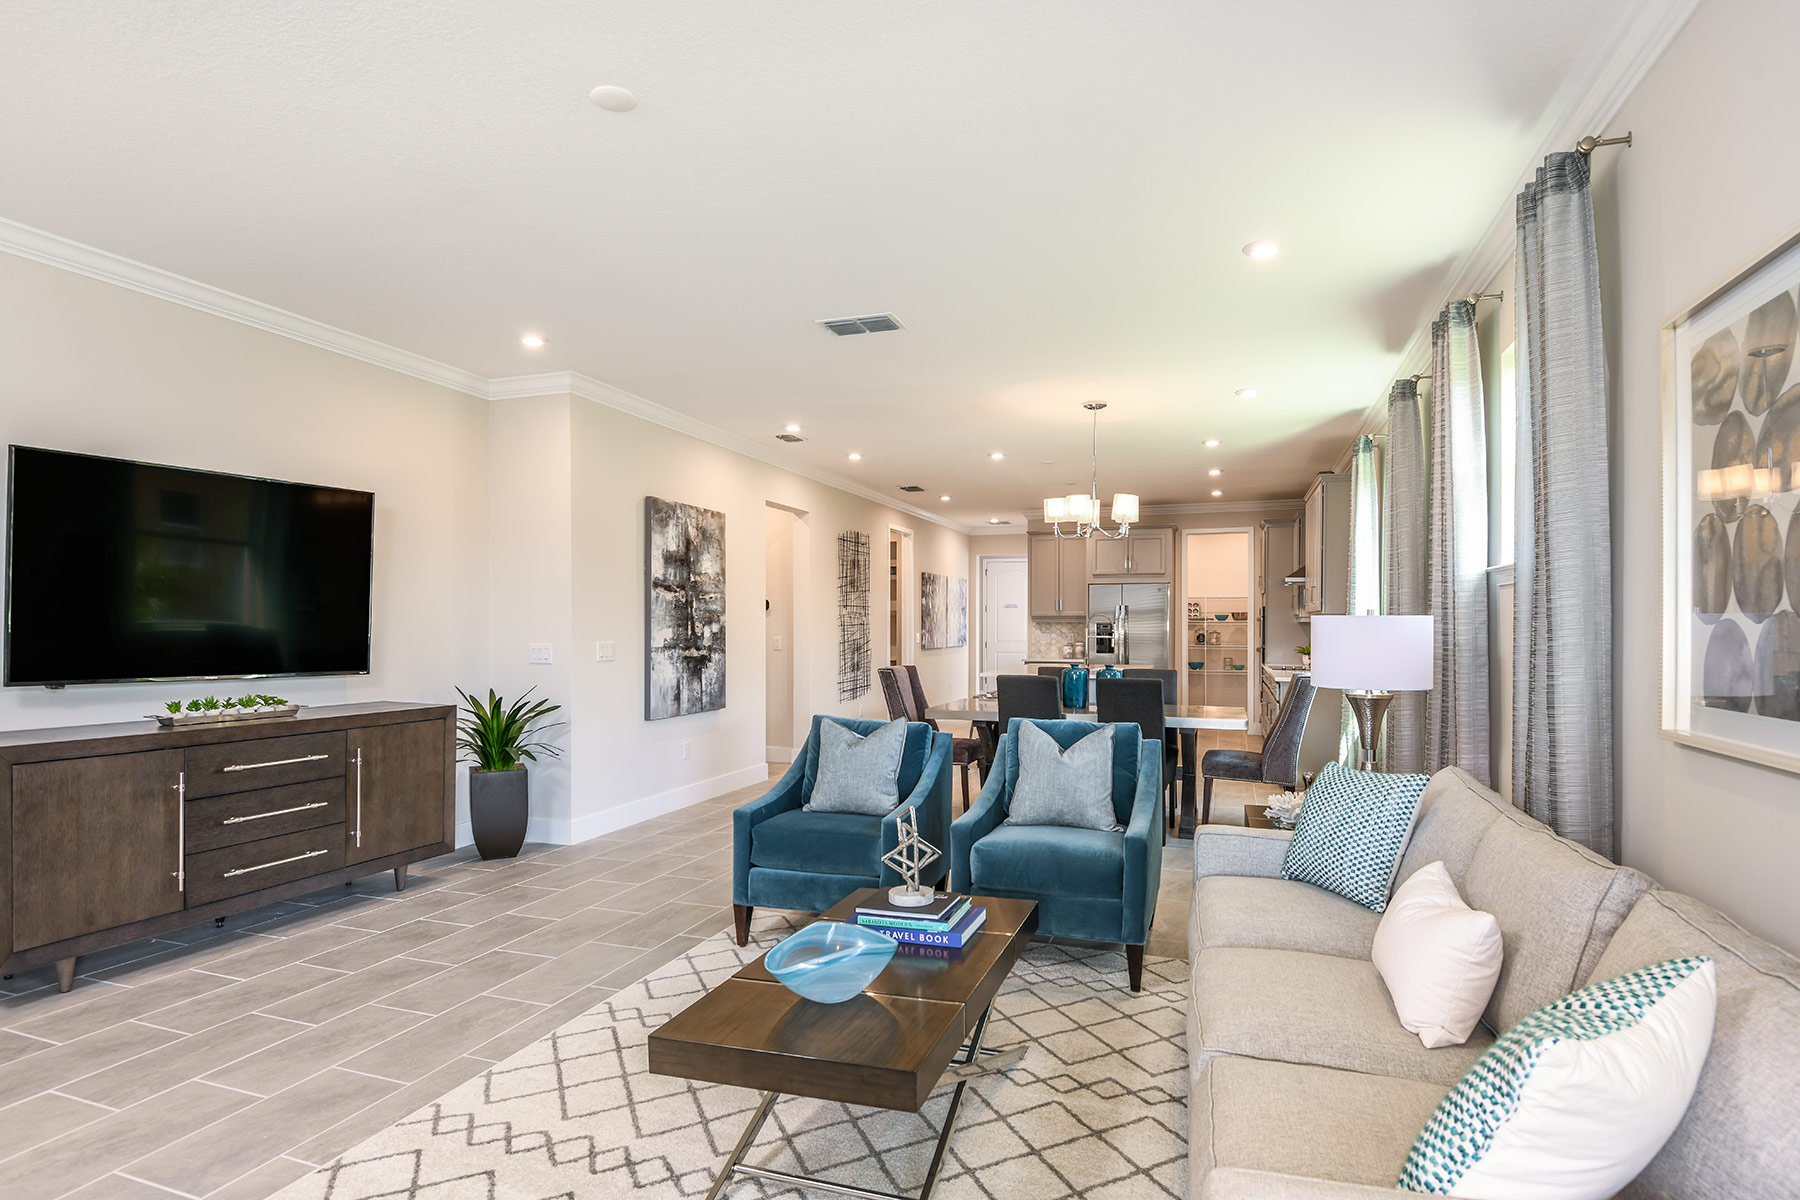 Dominica II Plan Greatroom at Wellen Park - Renaissance in Venice Florida by Mattamy Homes